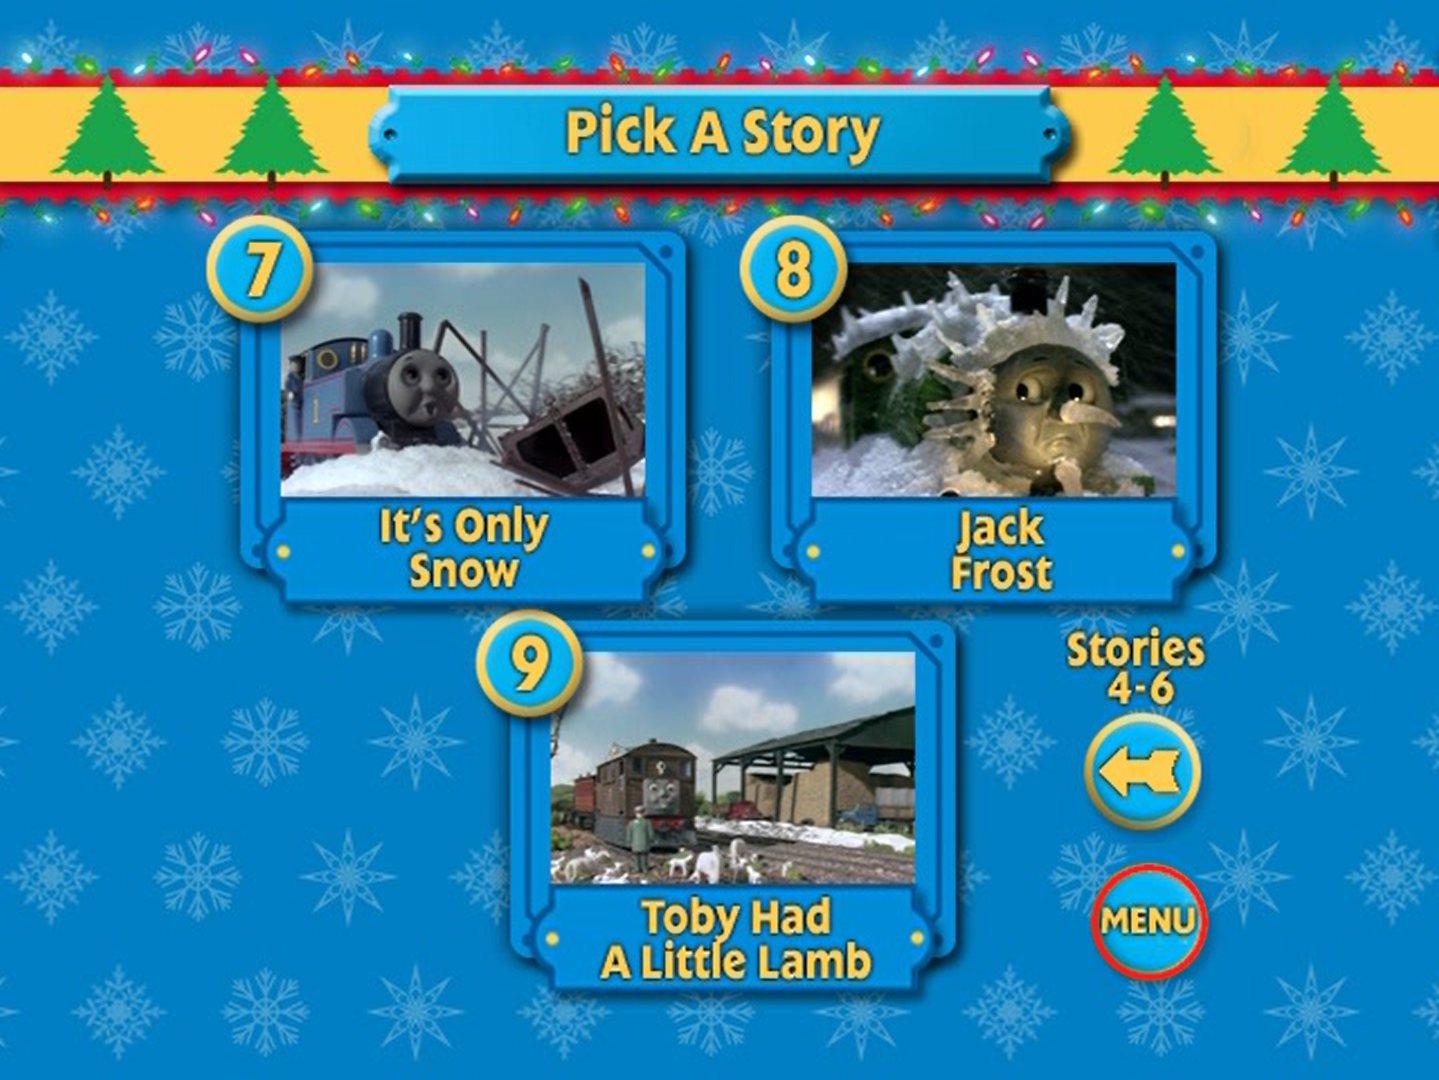 File:UltimateChristmasepisodeselectionmenu3.png